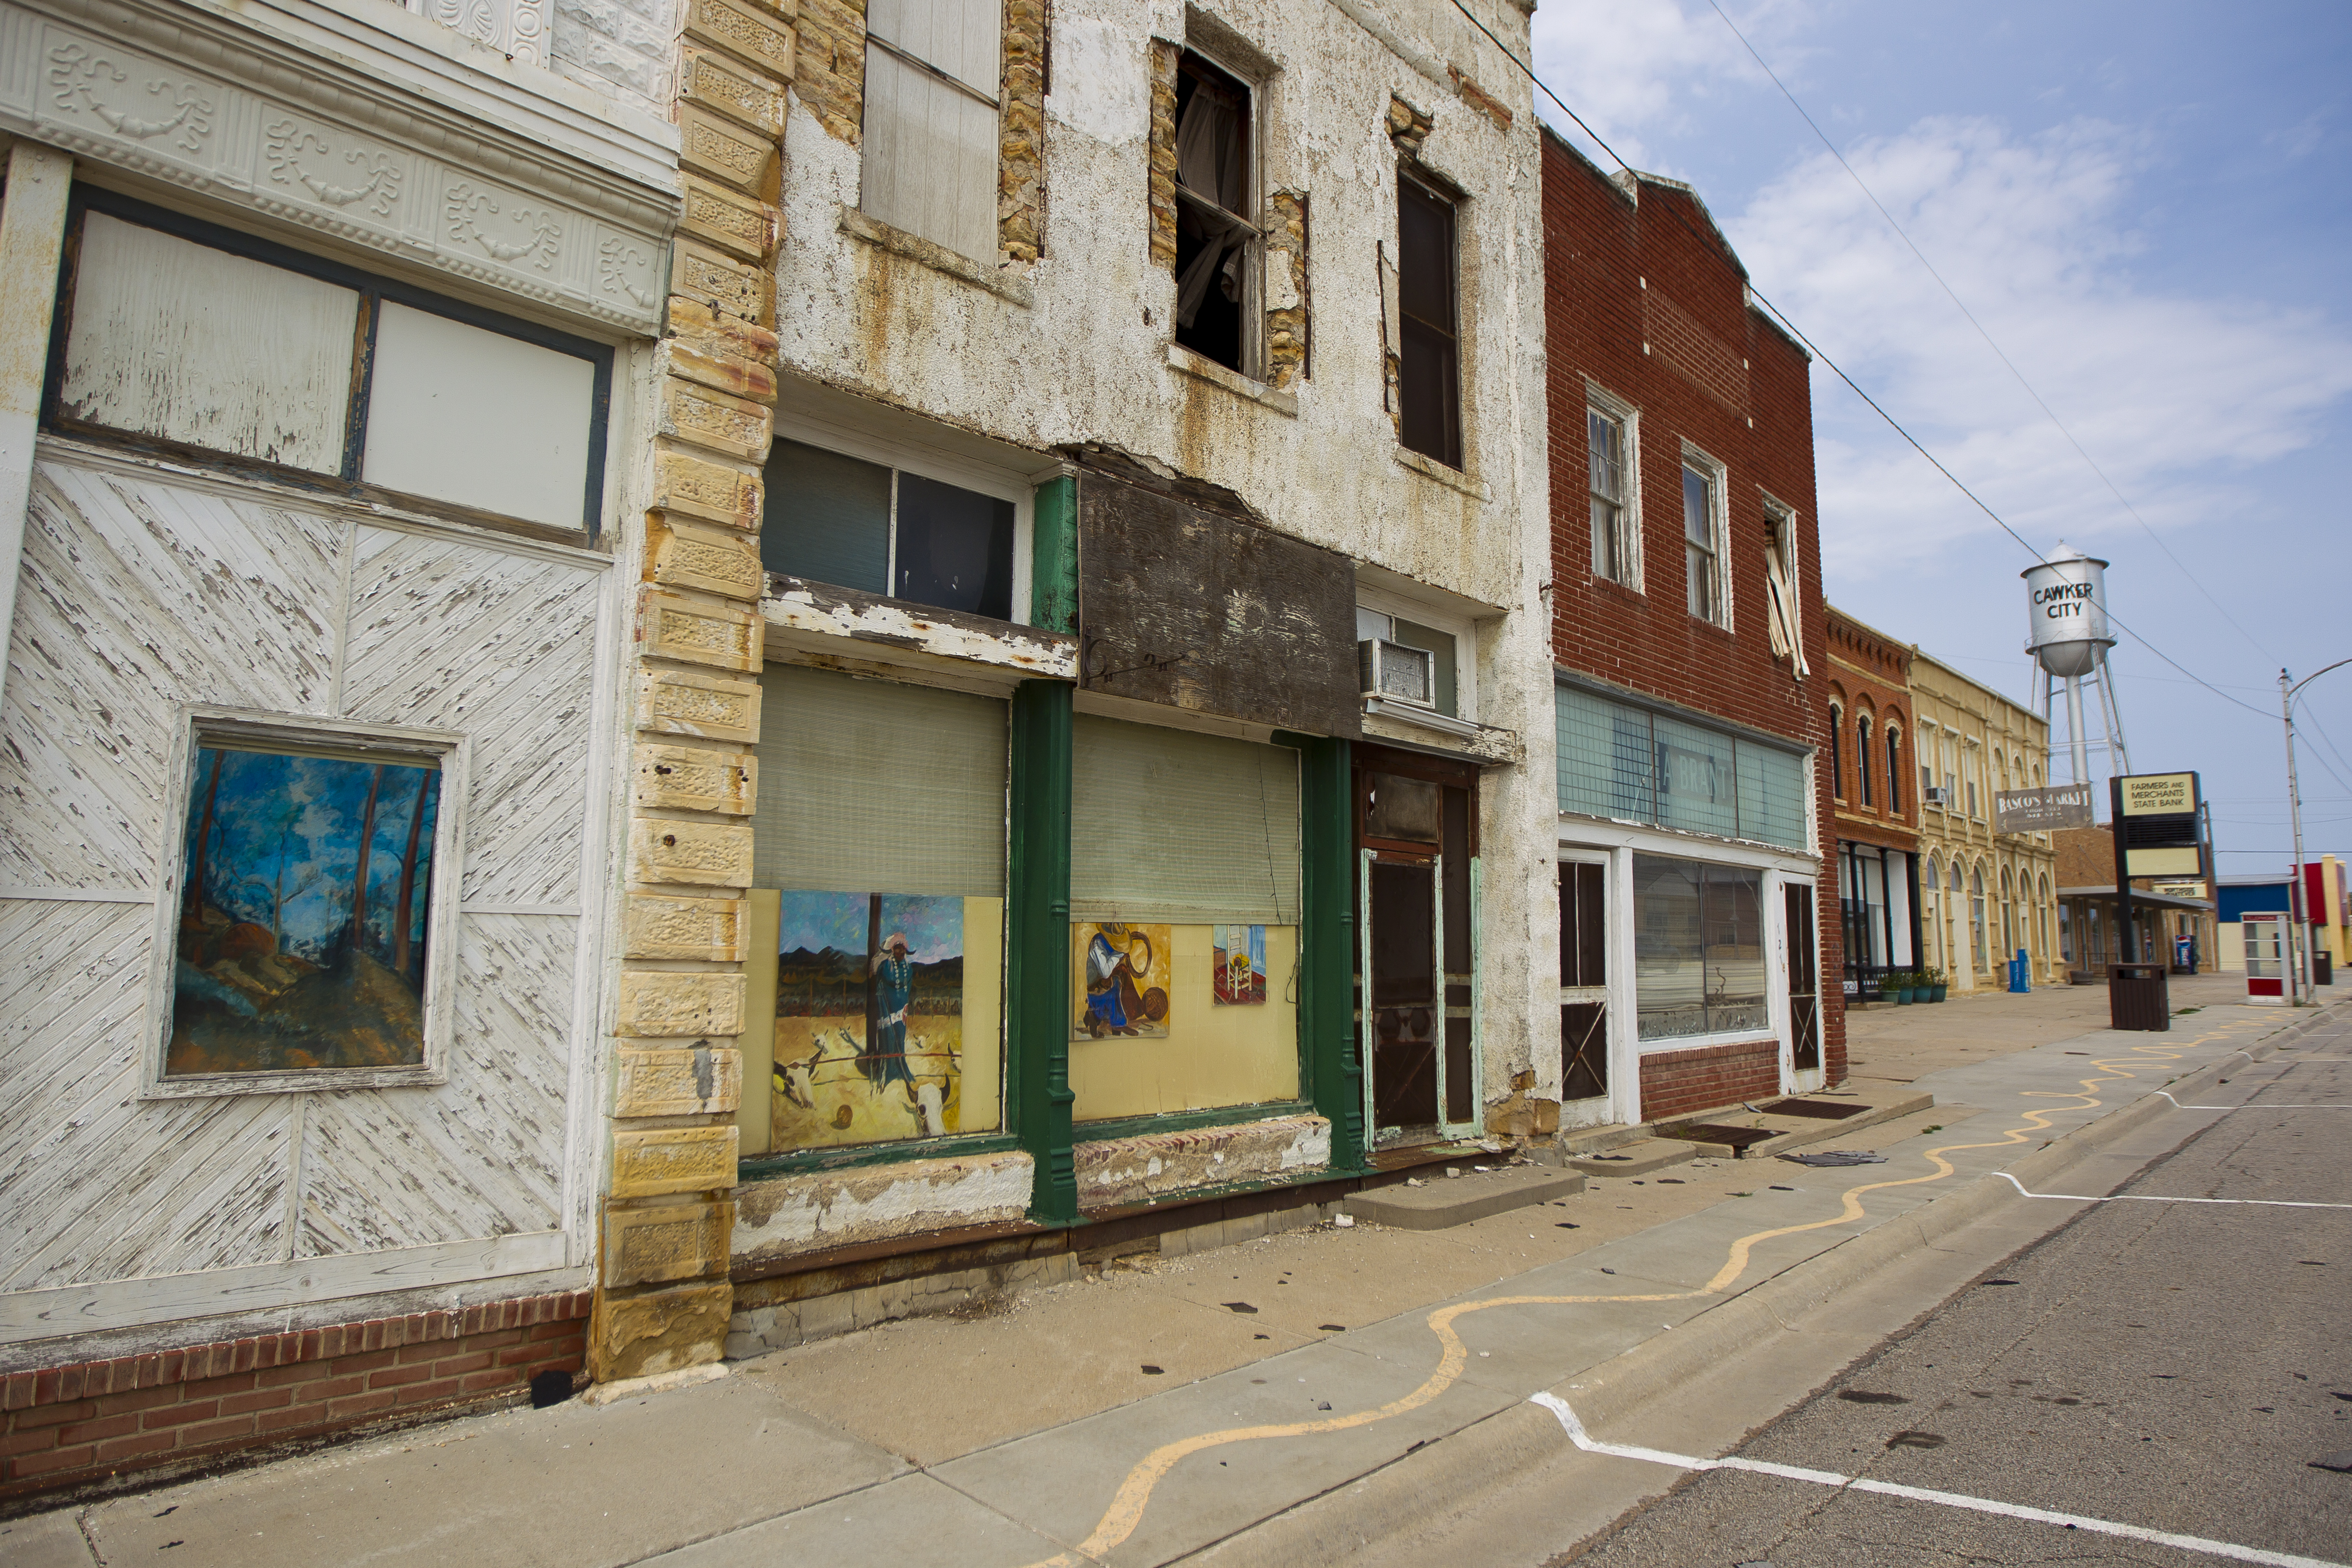 Empty buildings and streets in downtown Cawker City, Kansas.